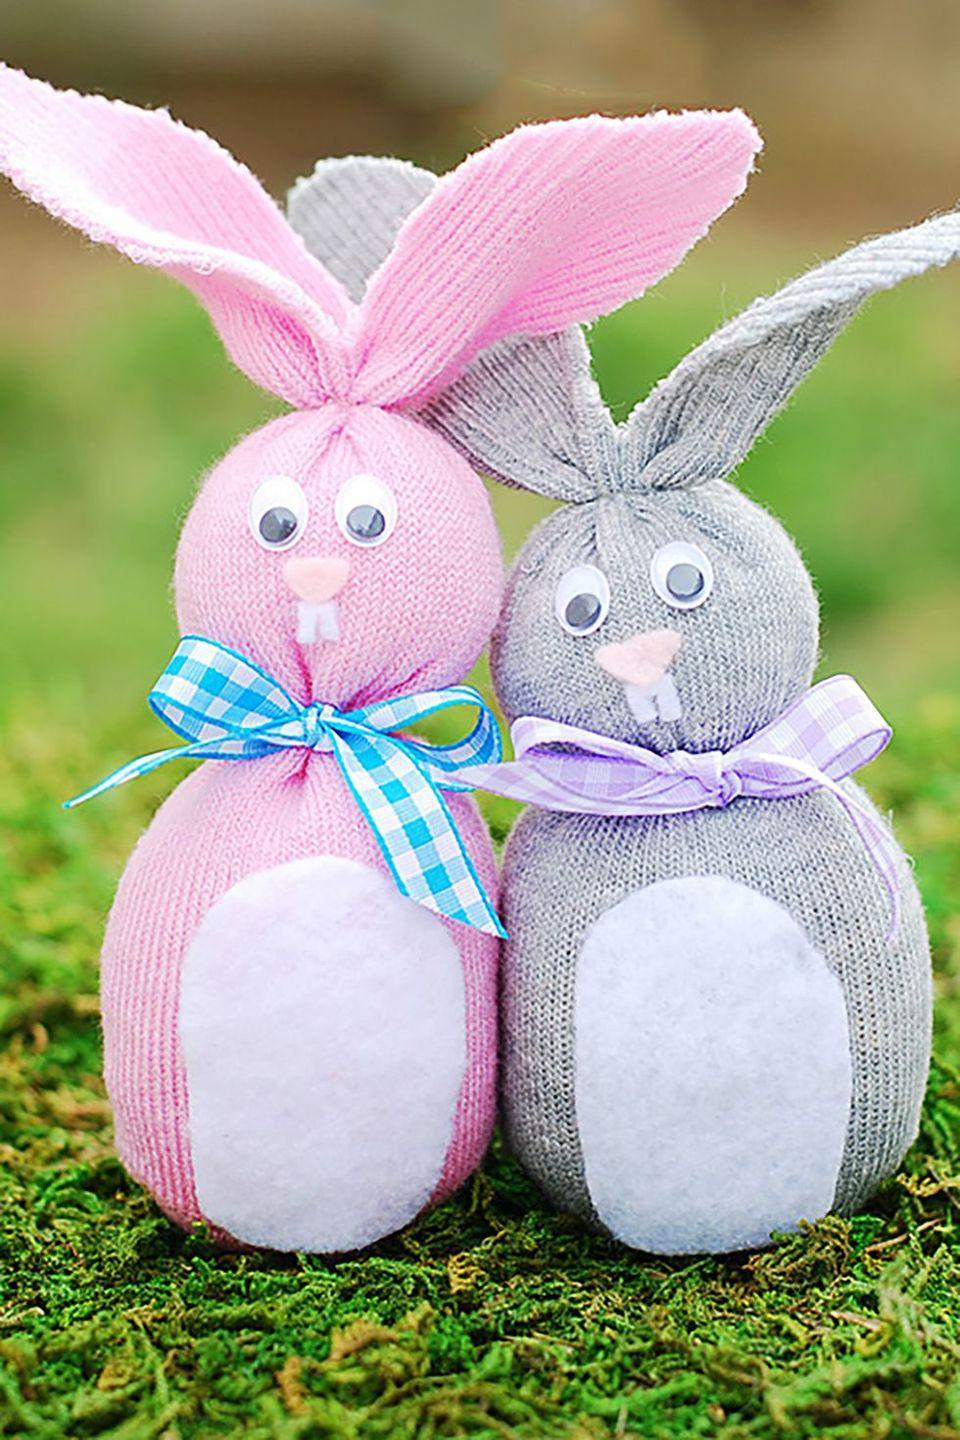 """<p>A small sock, glue-on googly eyes, some ribbon, and felt become an adorable woodland creature in this kid-friendly craft. </p><p><strong>Get the tutorial at <a href=""""http://apumpkinandaprincess.com/2013/03/sock-bunny-easter-crafts-for-kids.html"""" rel=""""nofollow noopener"""" target=""""_blank"""" data-ylk=""""slk:A Pumpkin & A Princess"""" class=""""link rapid-noclick-resp"""">A Pumpkin & A Princess</a>.</strong><br></p>"""